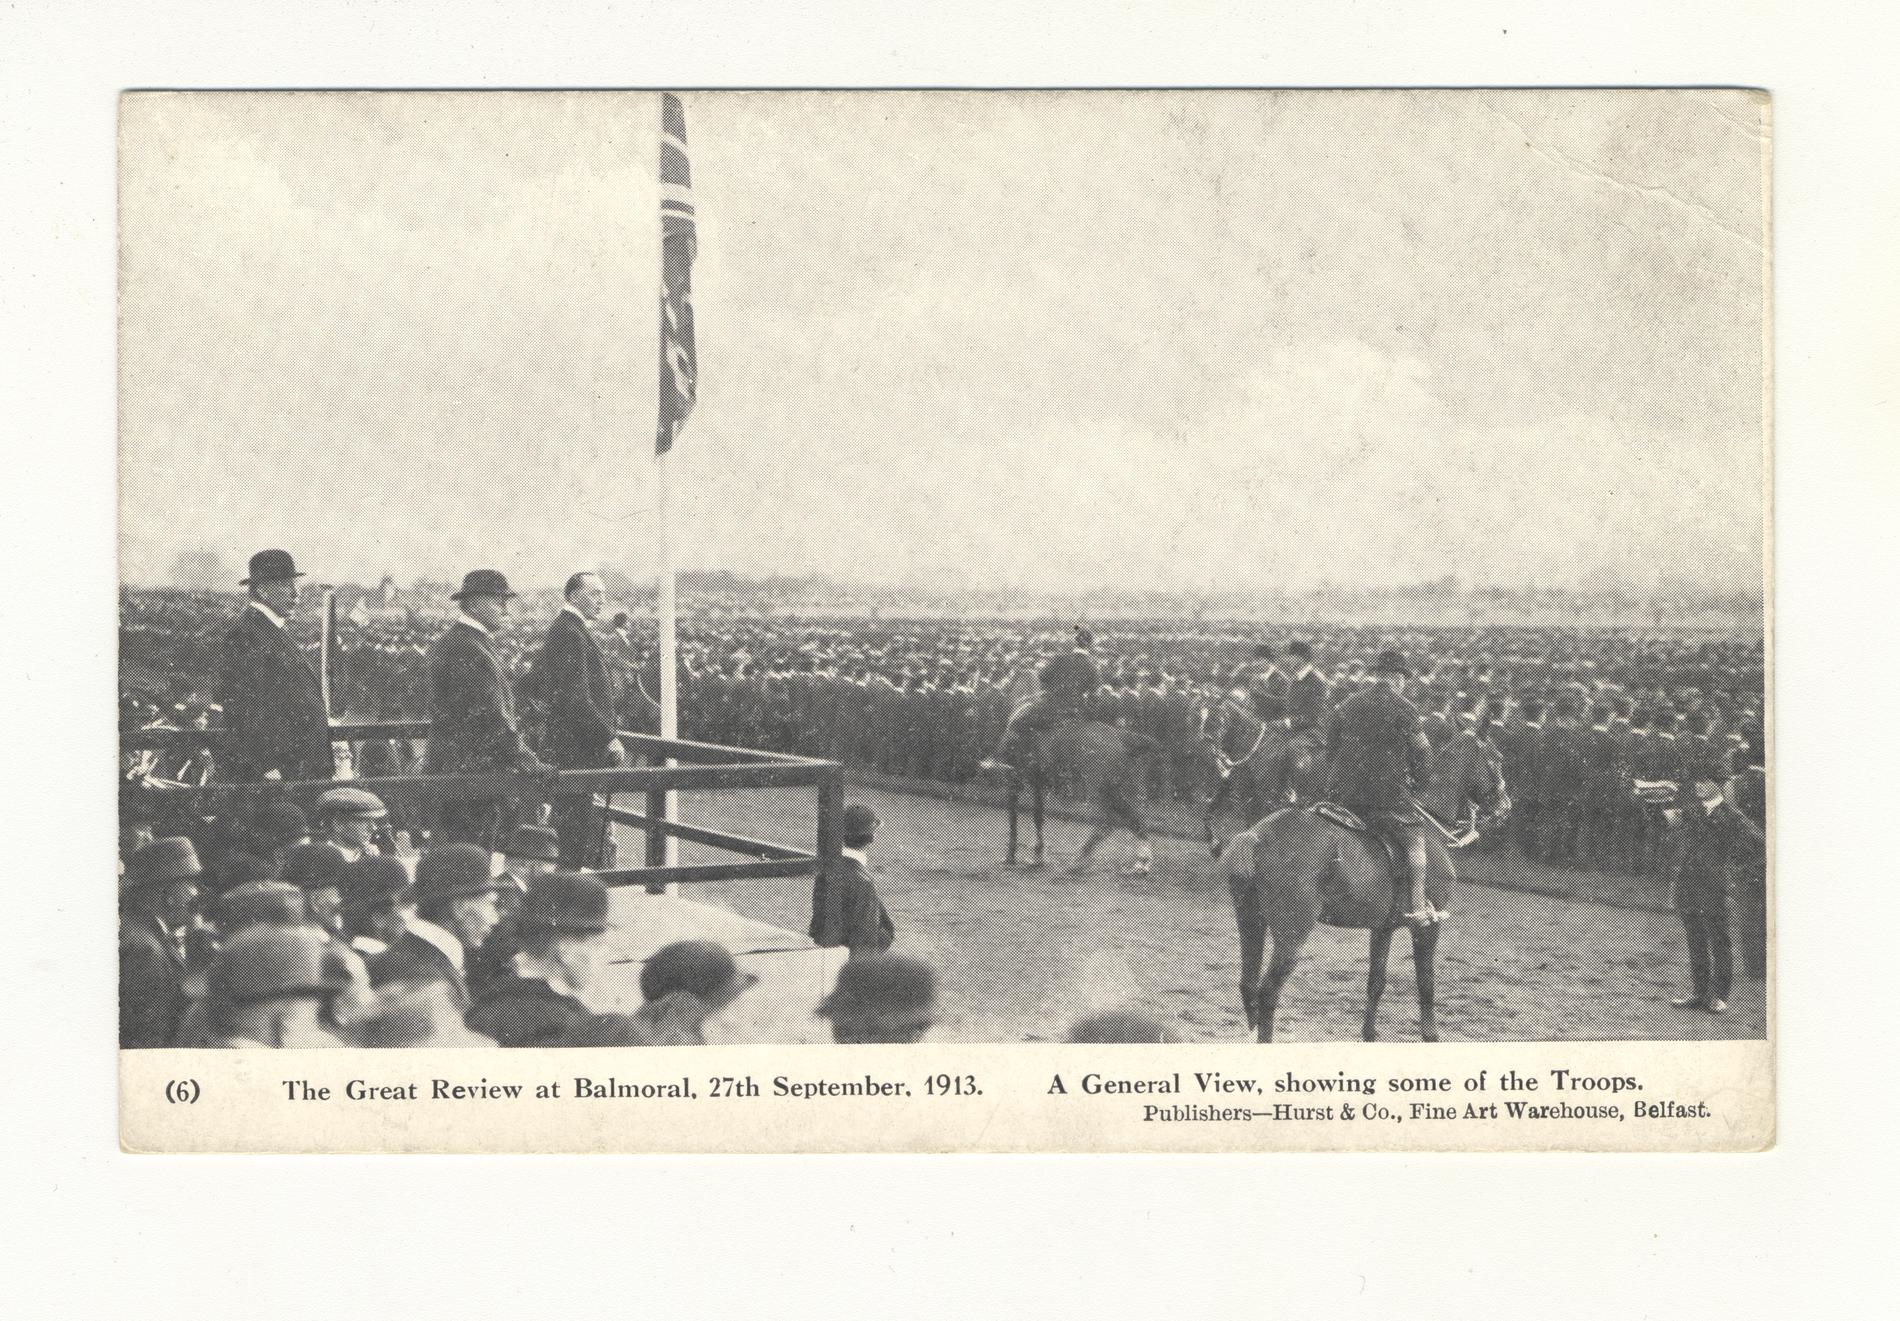 The Great Review at Balmoral, 27th Sept. 1913 (Postcard)